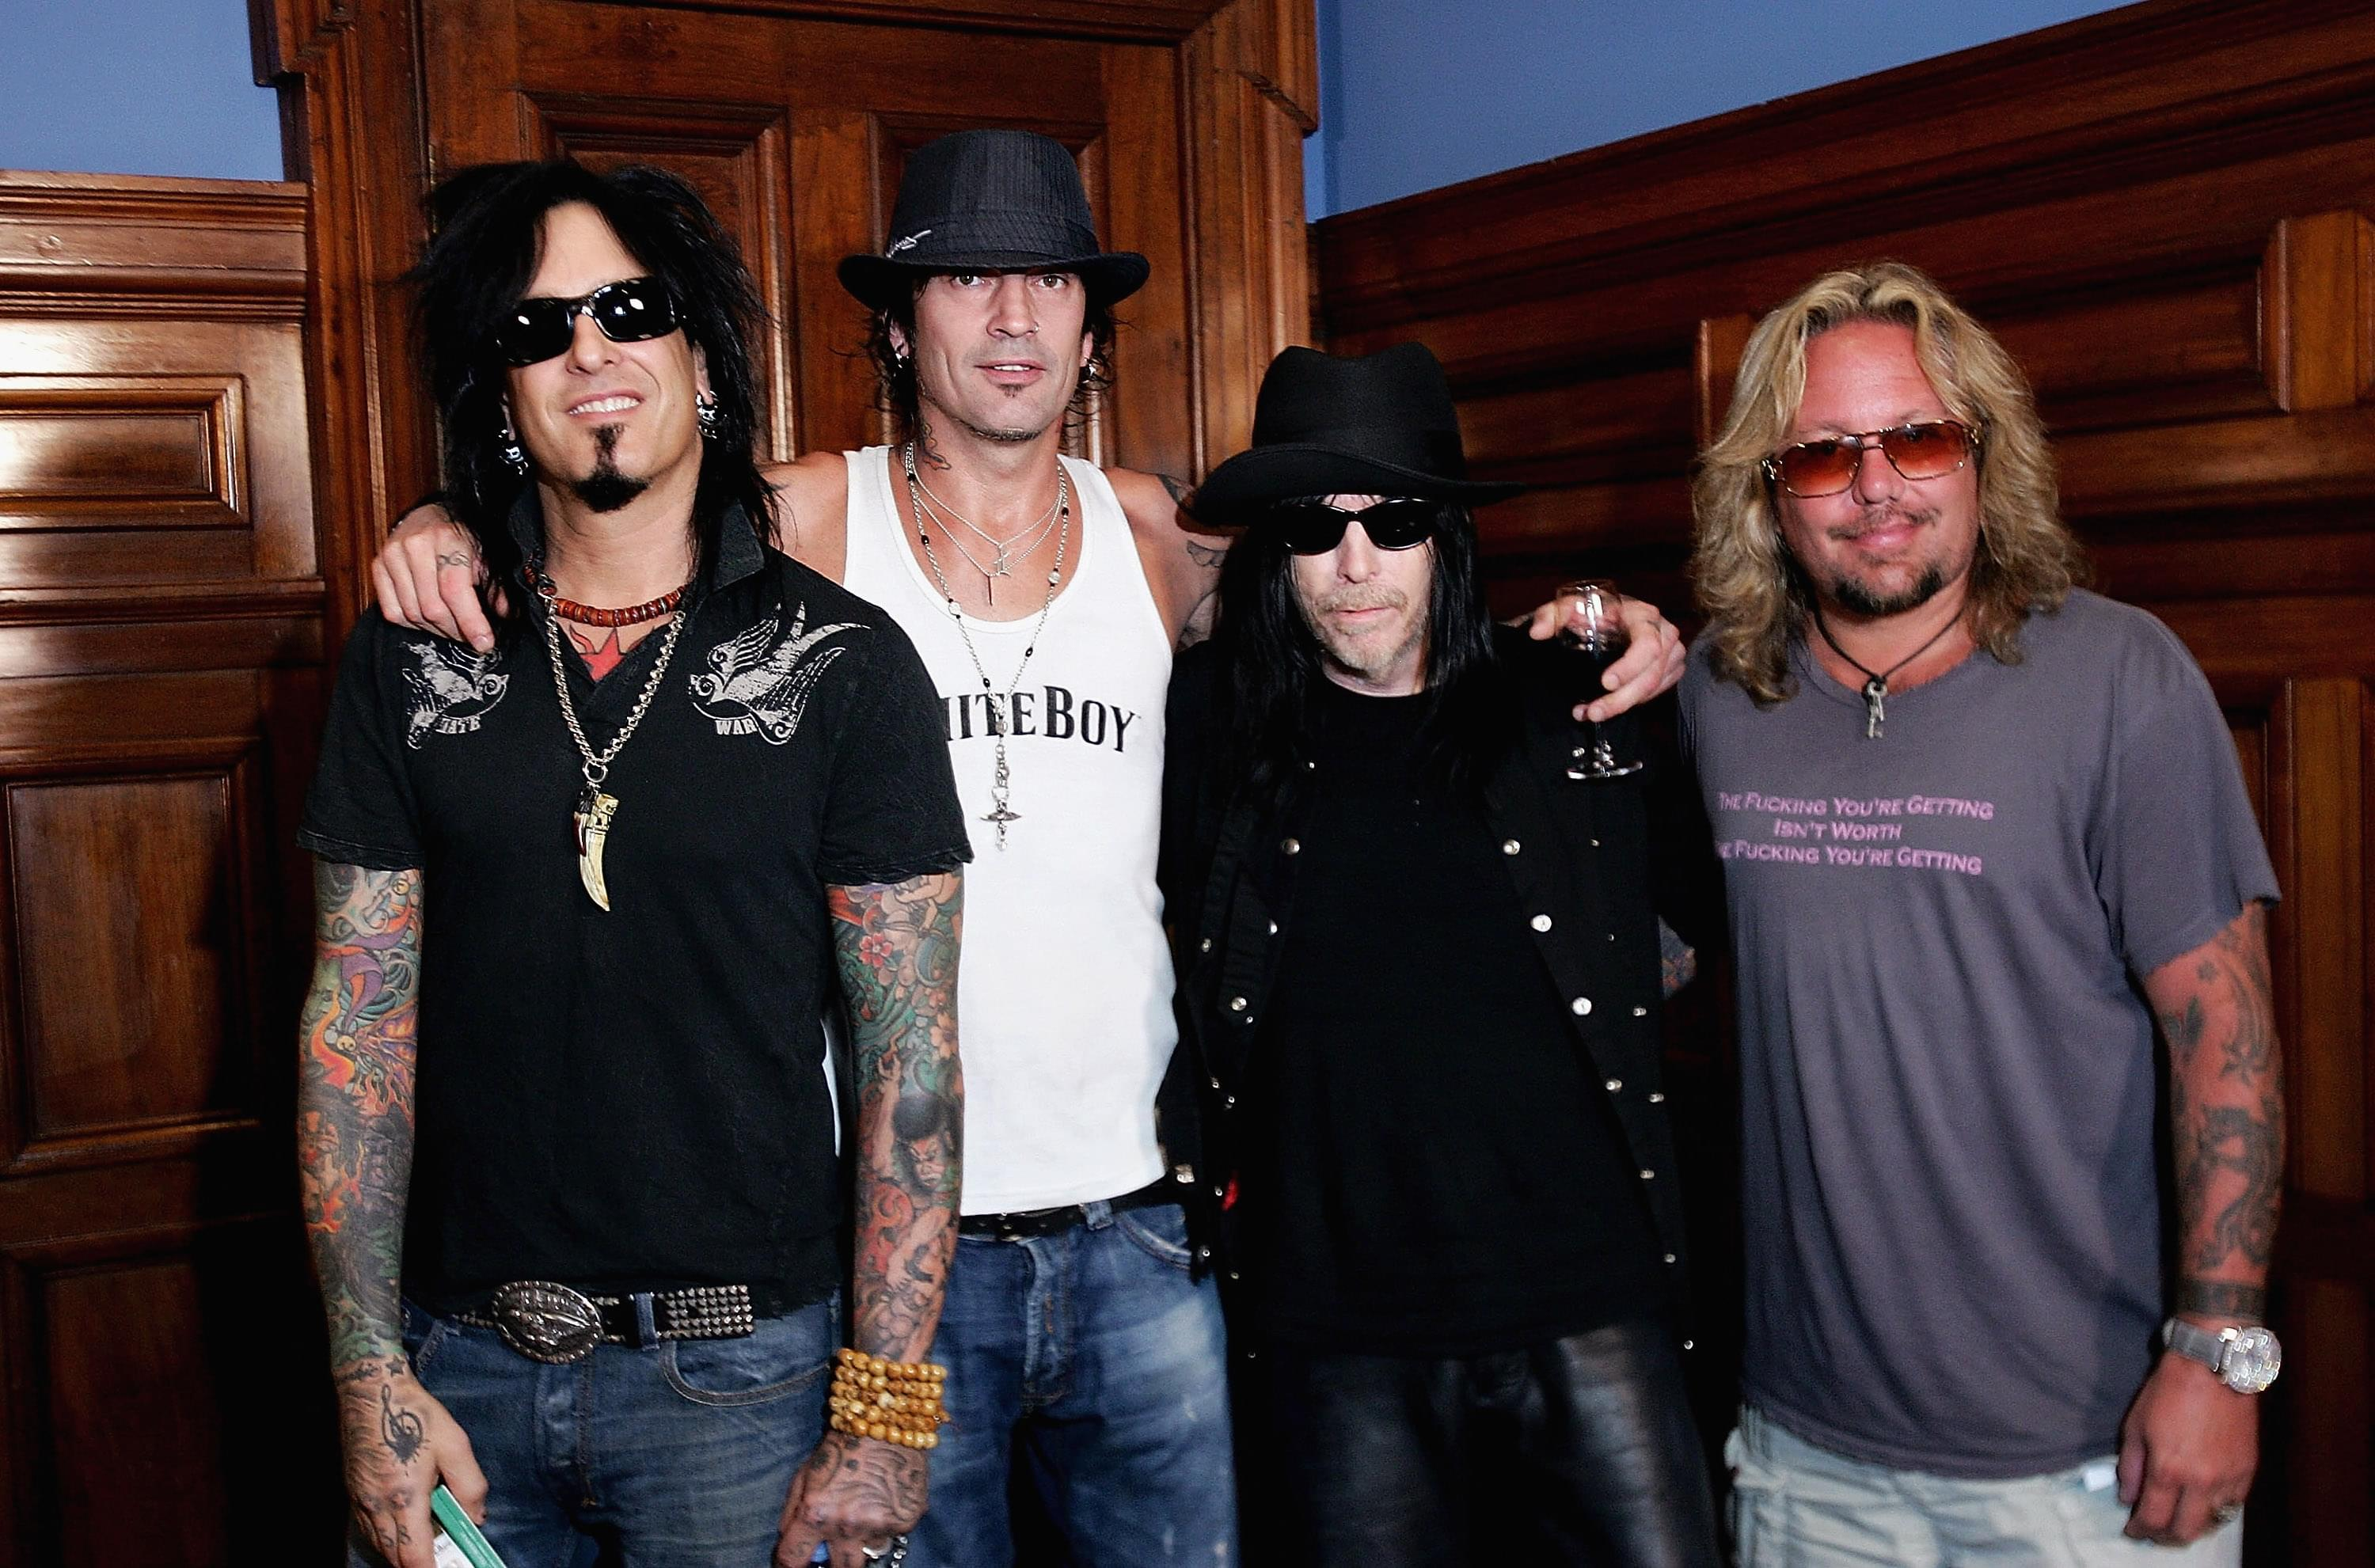 Motley Crue members 'Missed each other,' says Nikki Sixx